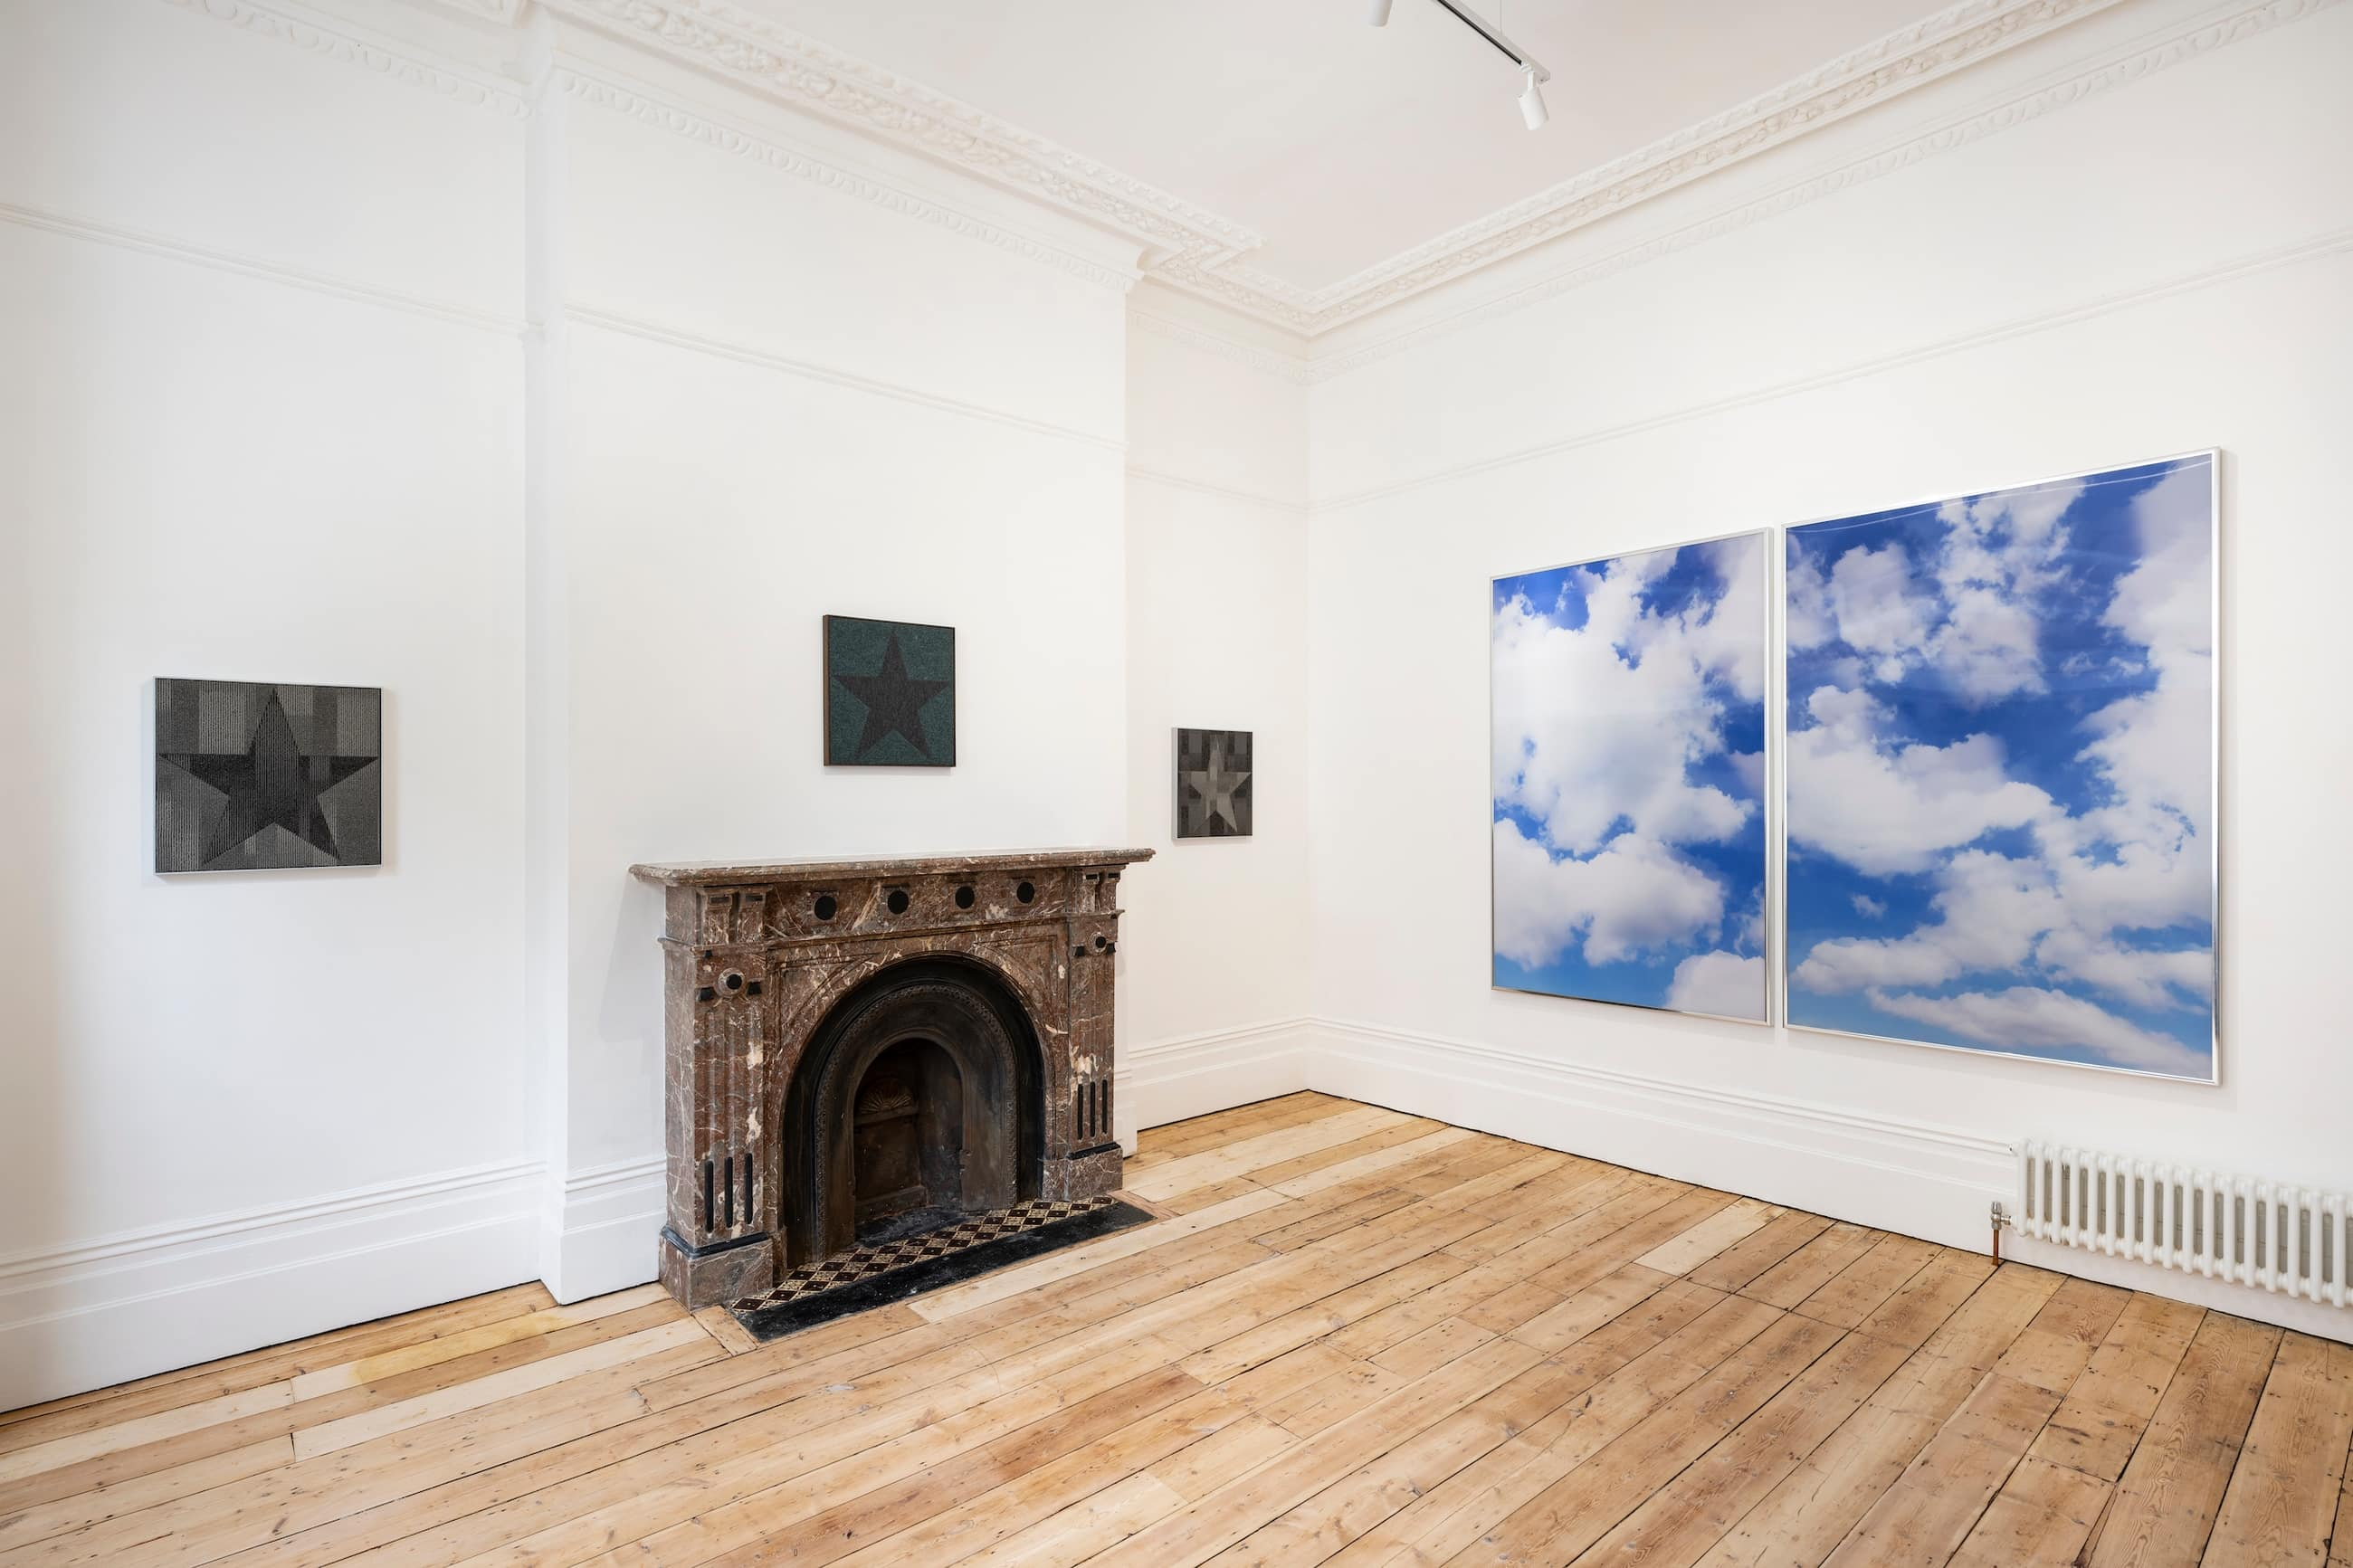 Installation view, 'Mimi Hope. Stars and Skies', 24 June – 1 August 2021, Alex Vardaxoglou, London. Courtesy the artist and Alex Vardaxoglou. Photograph: Damian Griffiths.